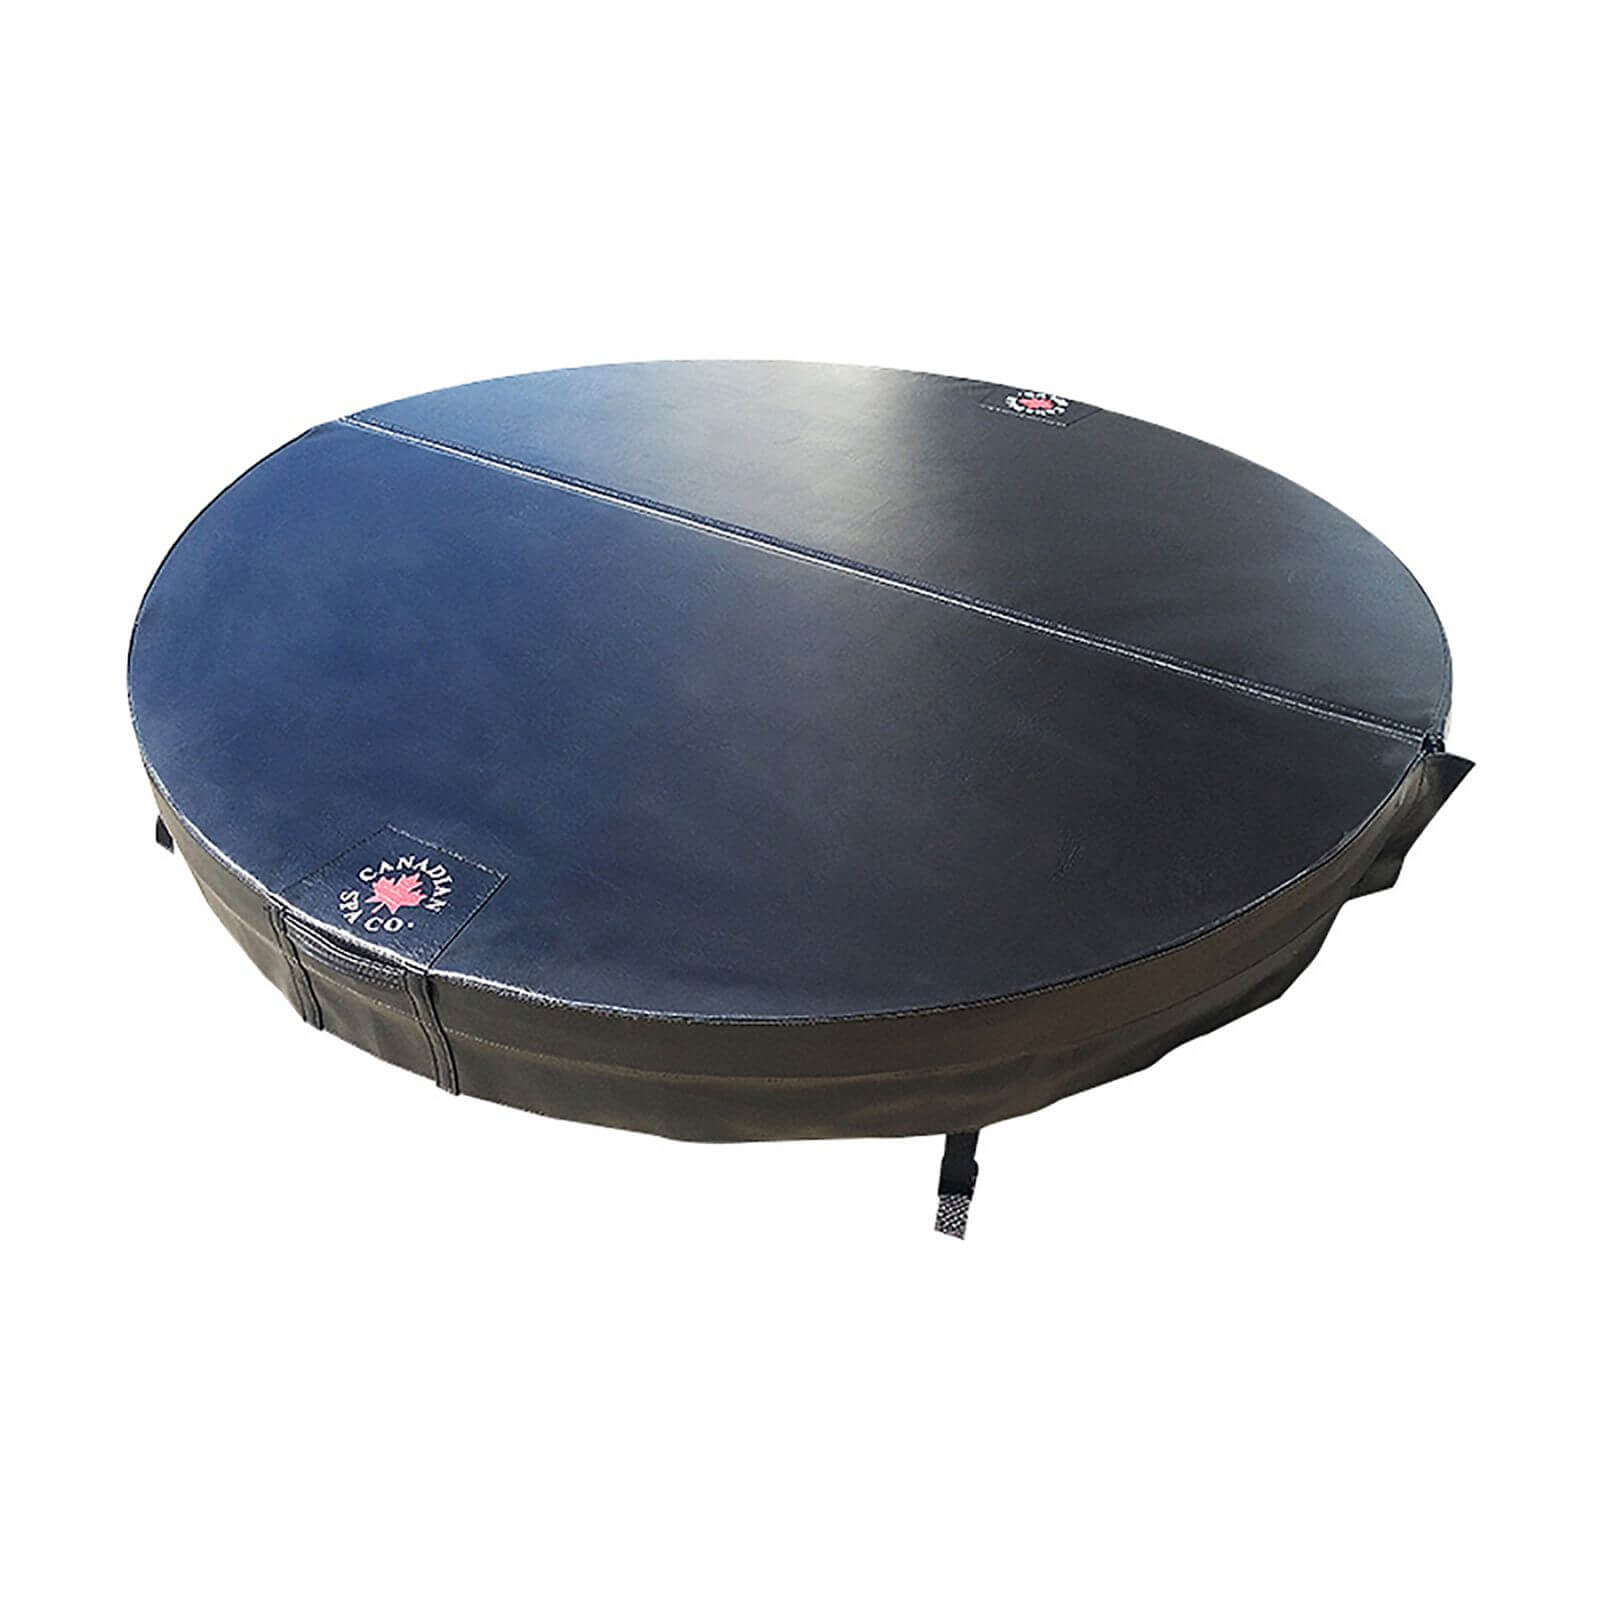 Canadian Spa Swift Current / Swift Current 2 Upgrade Hot Tub Cover